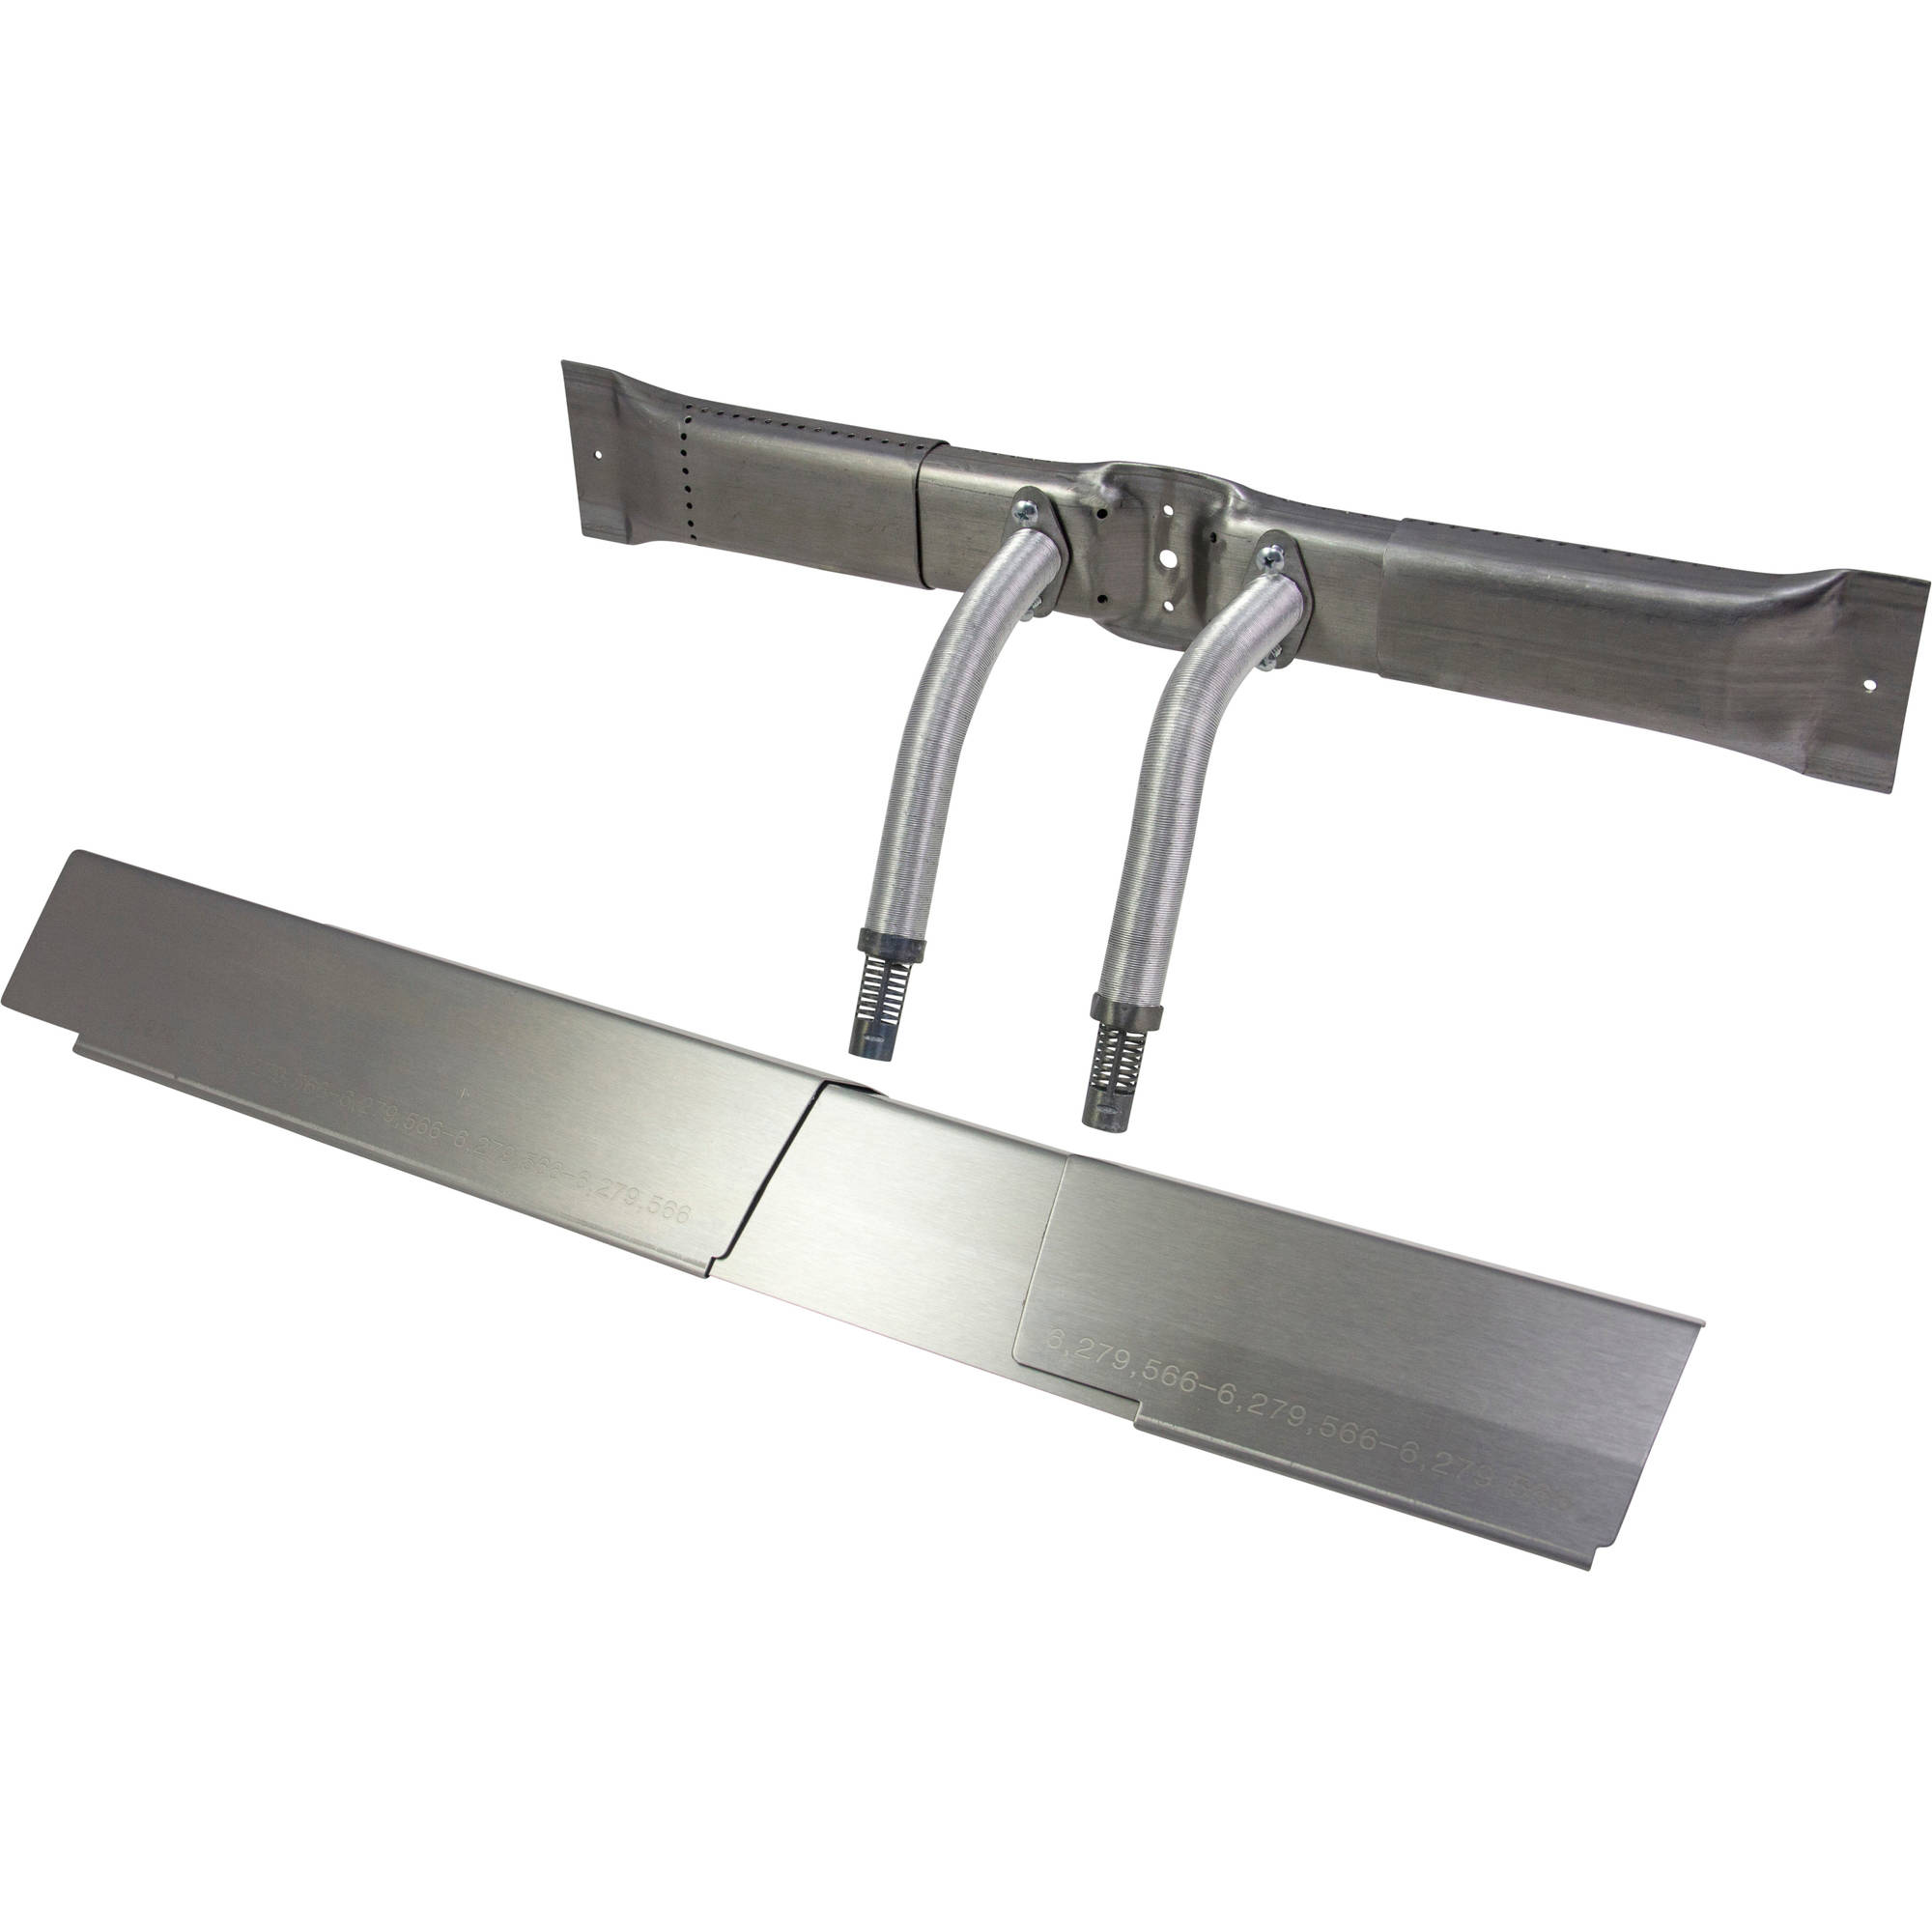 Char Broil Universal Stainless Steel Bar Burner and Heat Tent  sc 1 st  Walmart & Char Broil Universal Stainless Steel Bar Burner and Heat Tent ...